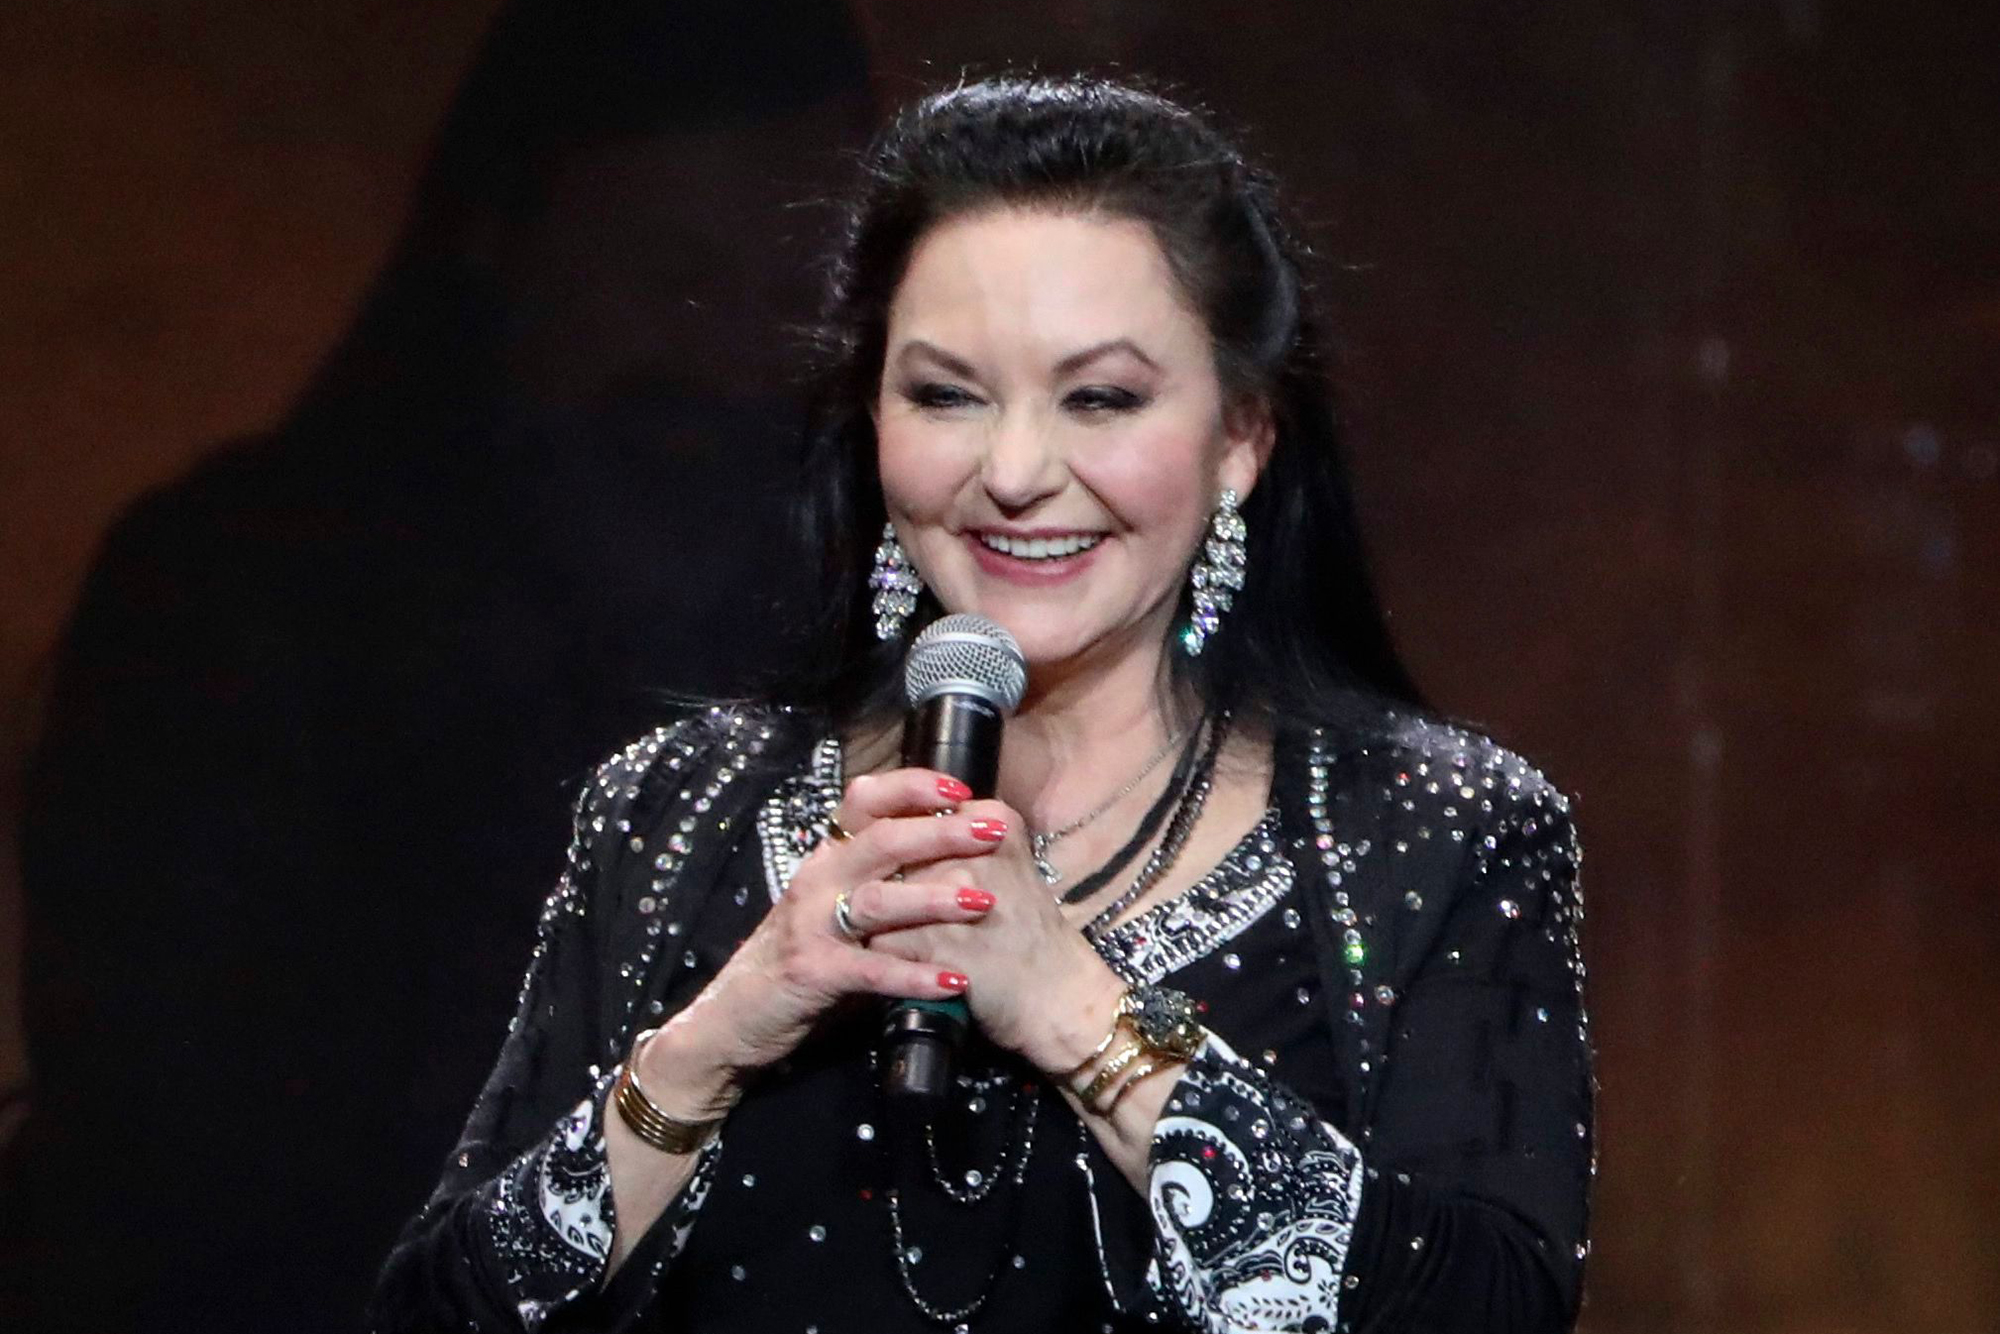 Crystal Gayle to Revisit Country Standards on New Album 'You Don't Know Me'